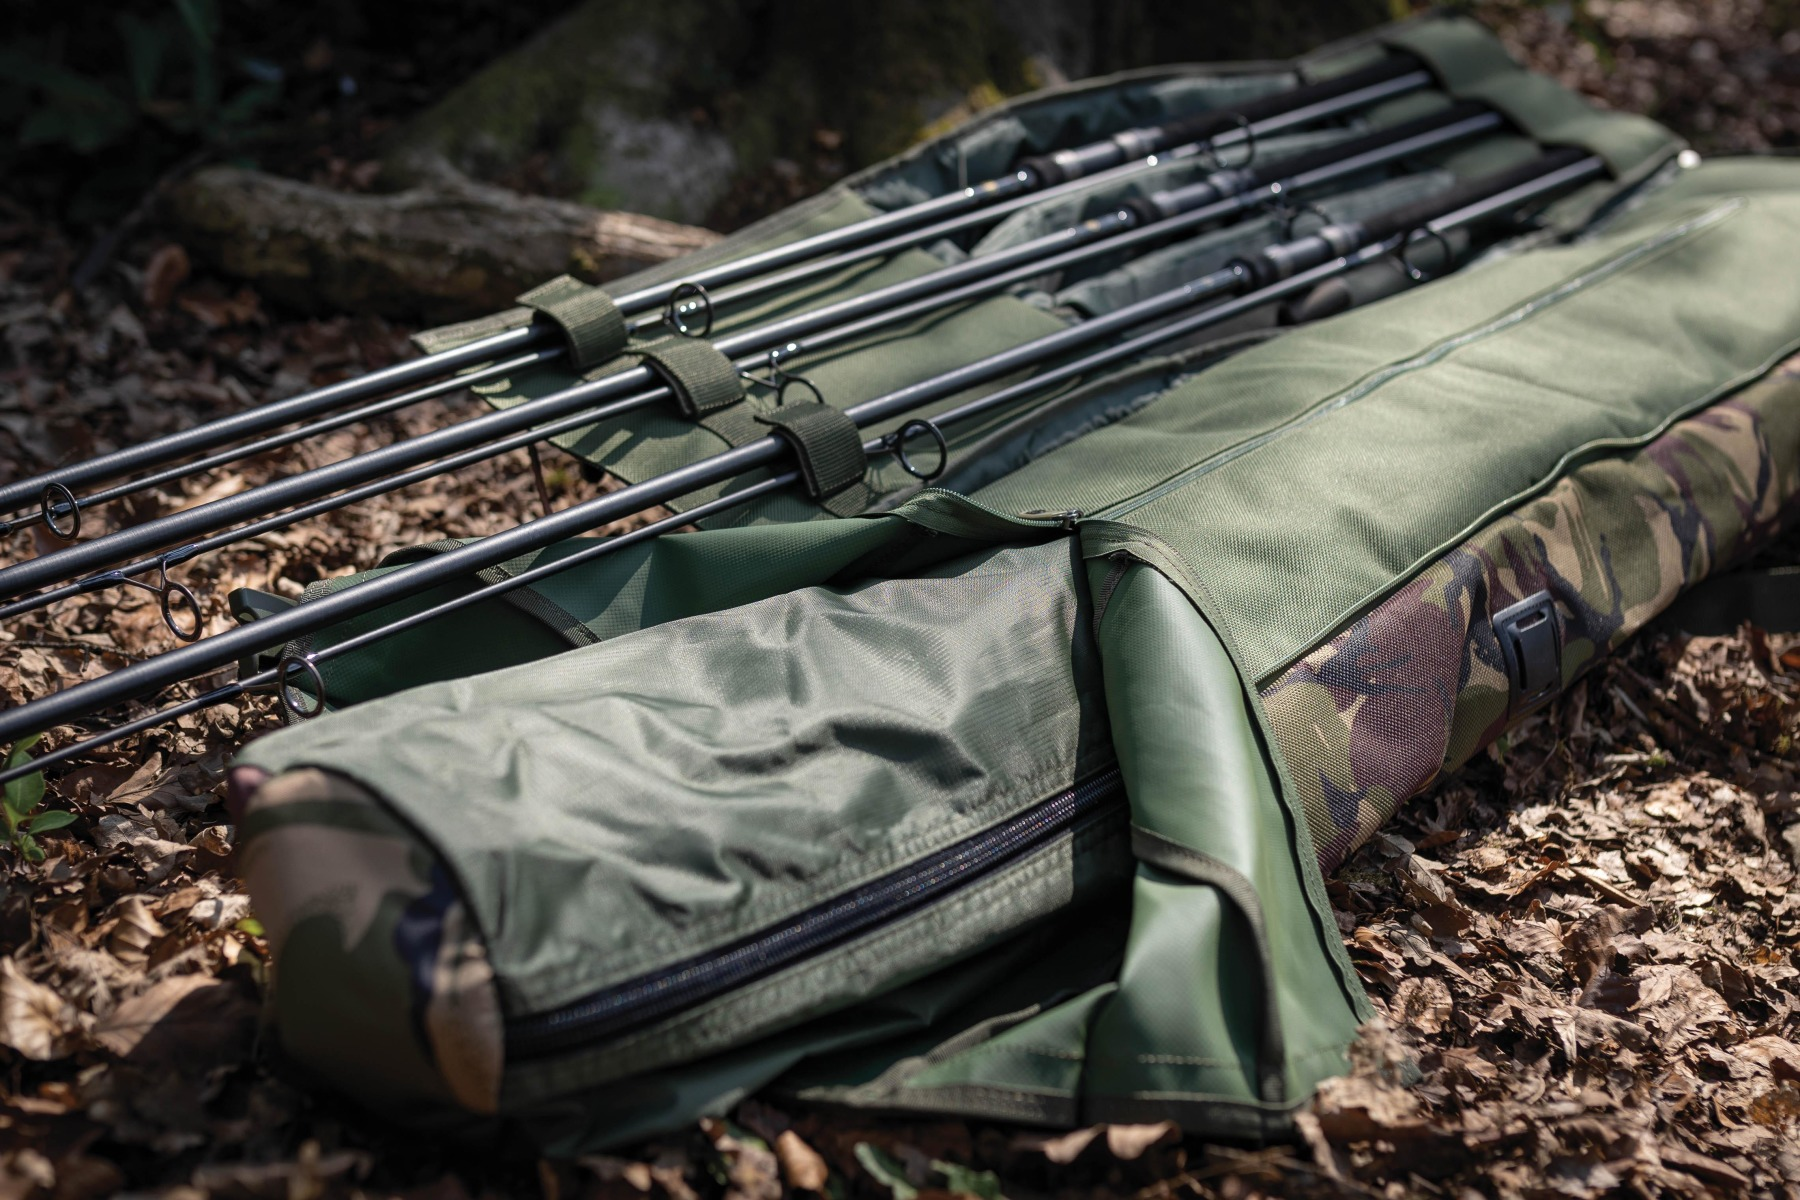 The roll-top design secures the main compartment, and will house everything from a shelter to nets and slings